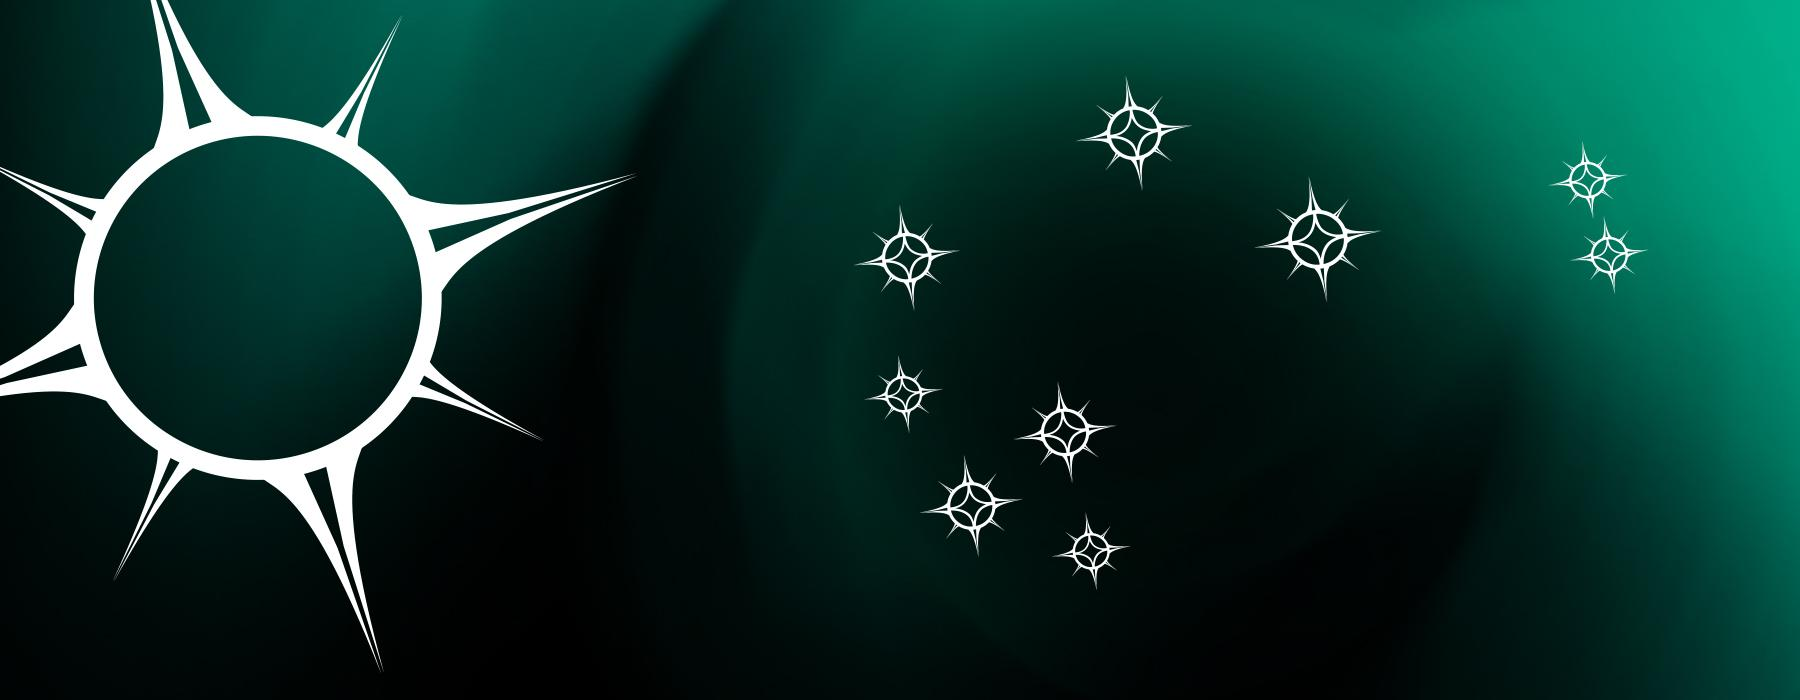 A green panel with a large star and nine other smaller stars arranged on it